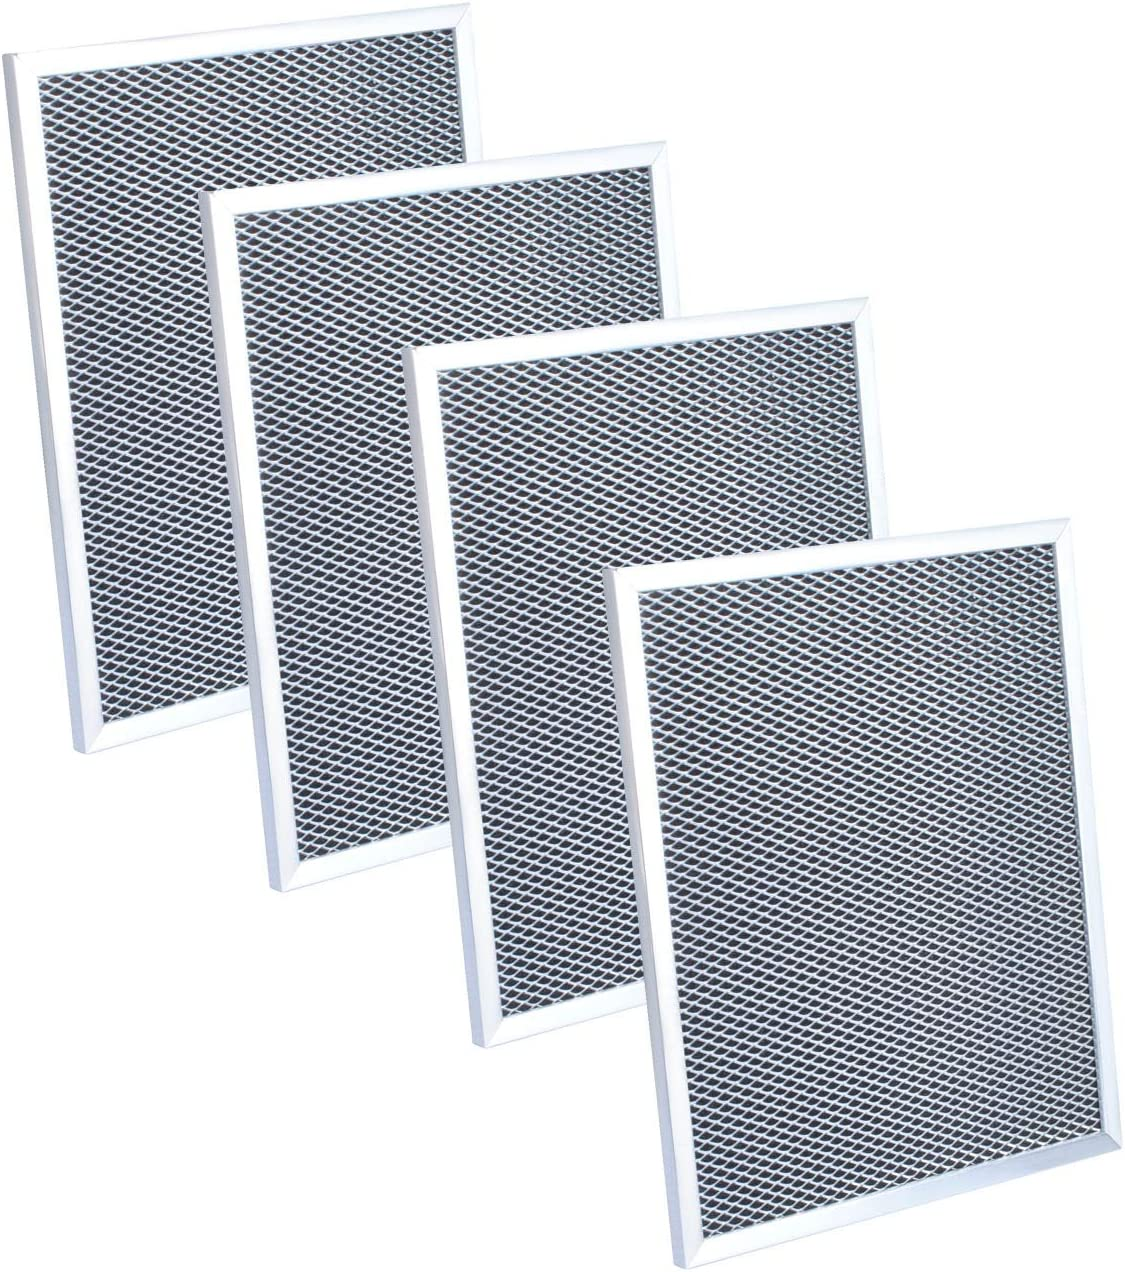 """97007696 Range Hood Charcoal Filter for Broan 6105C, 97005687, 97007576, 99010123, C-6105 Replacement Filter 8-3/4"""" x 10-1/2"""" x 3/8"""" (4 Pack)"""